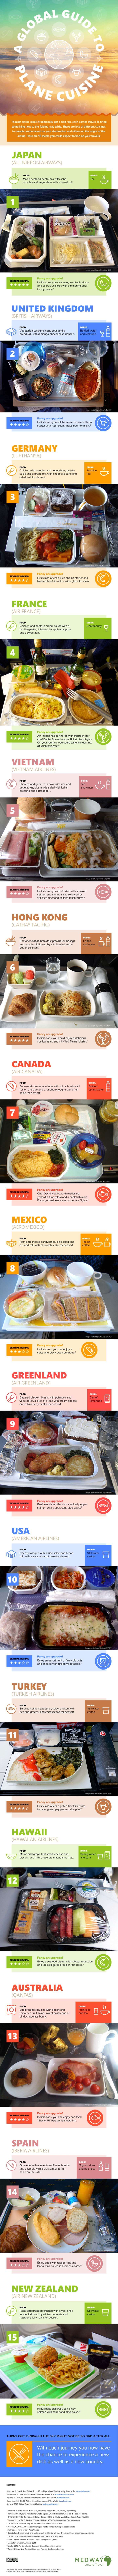 A Global Guide to Plane Cuisine